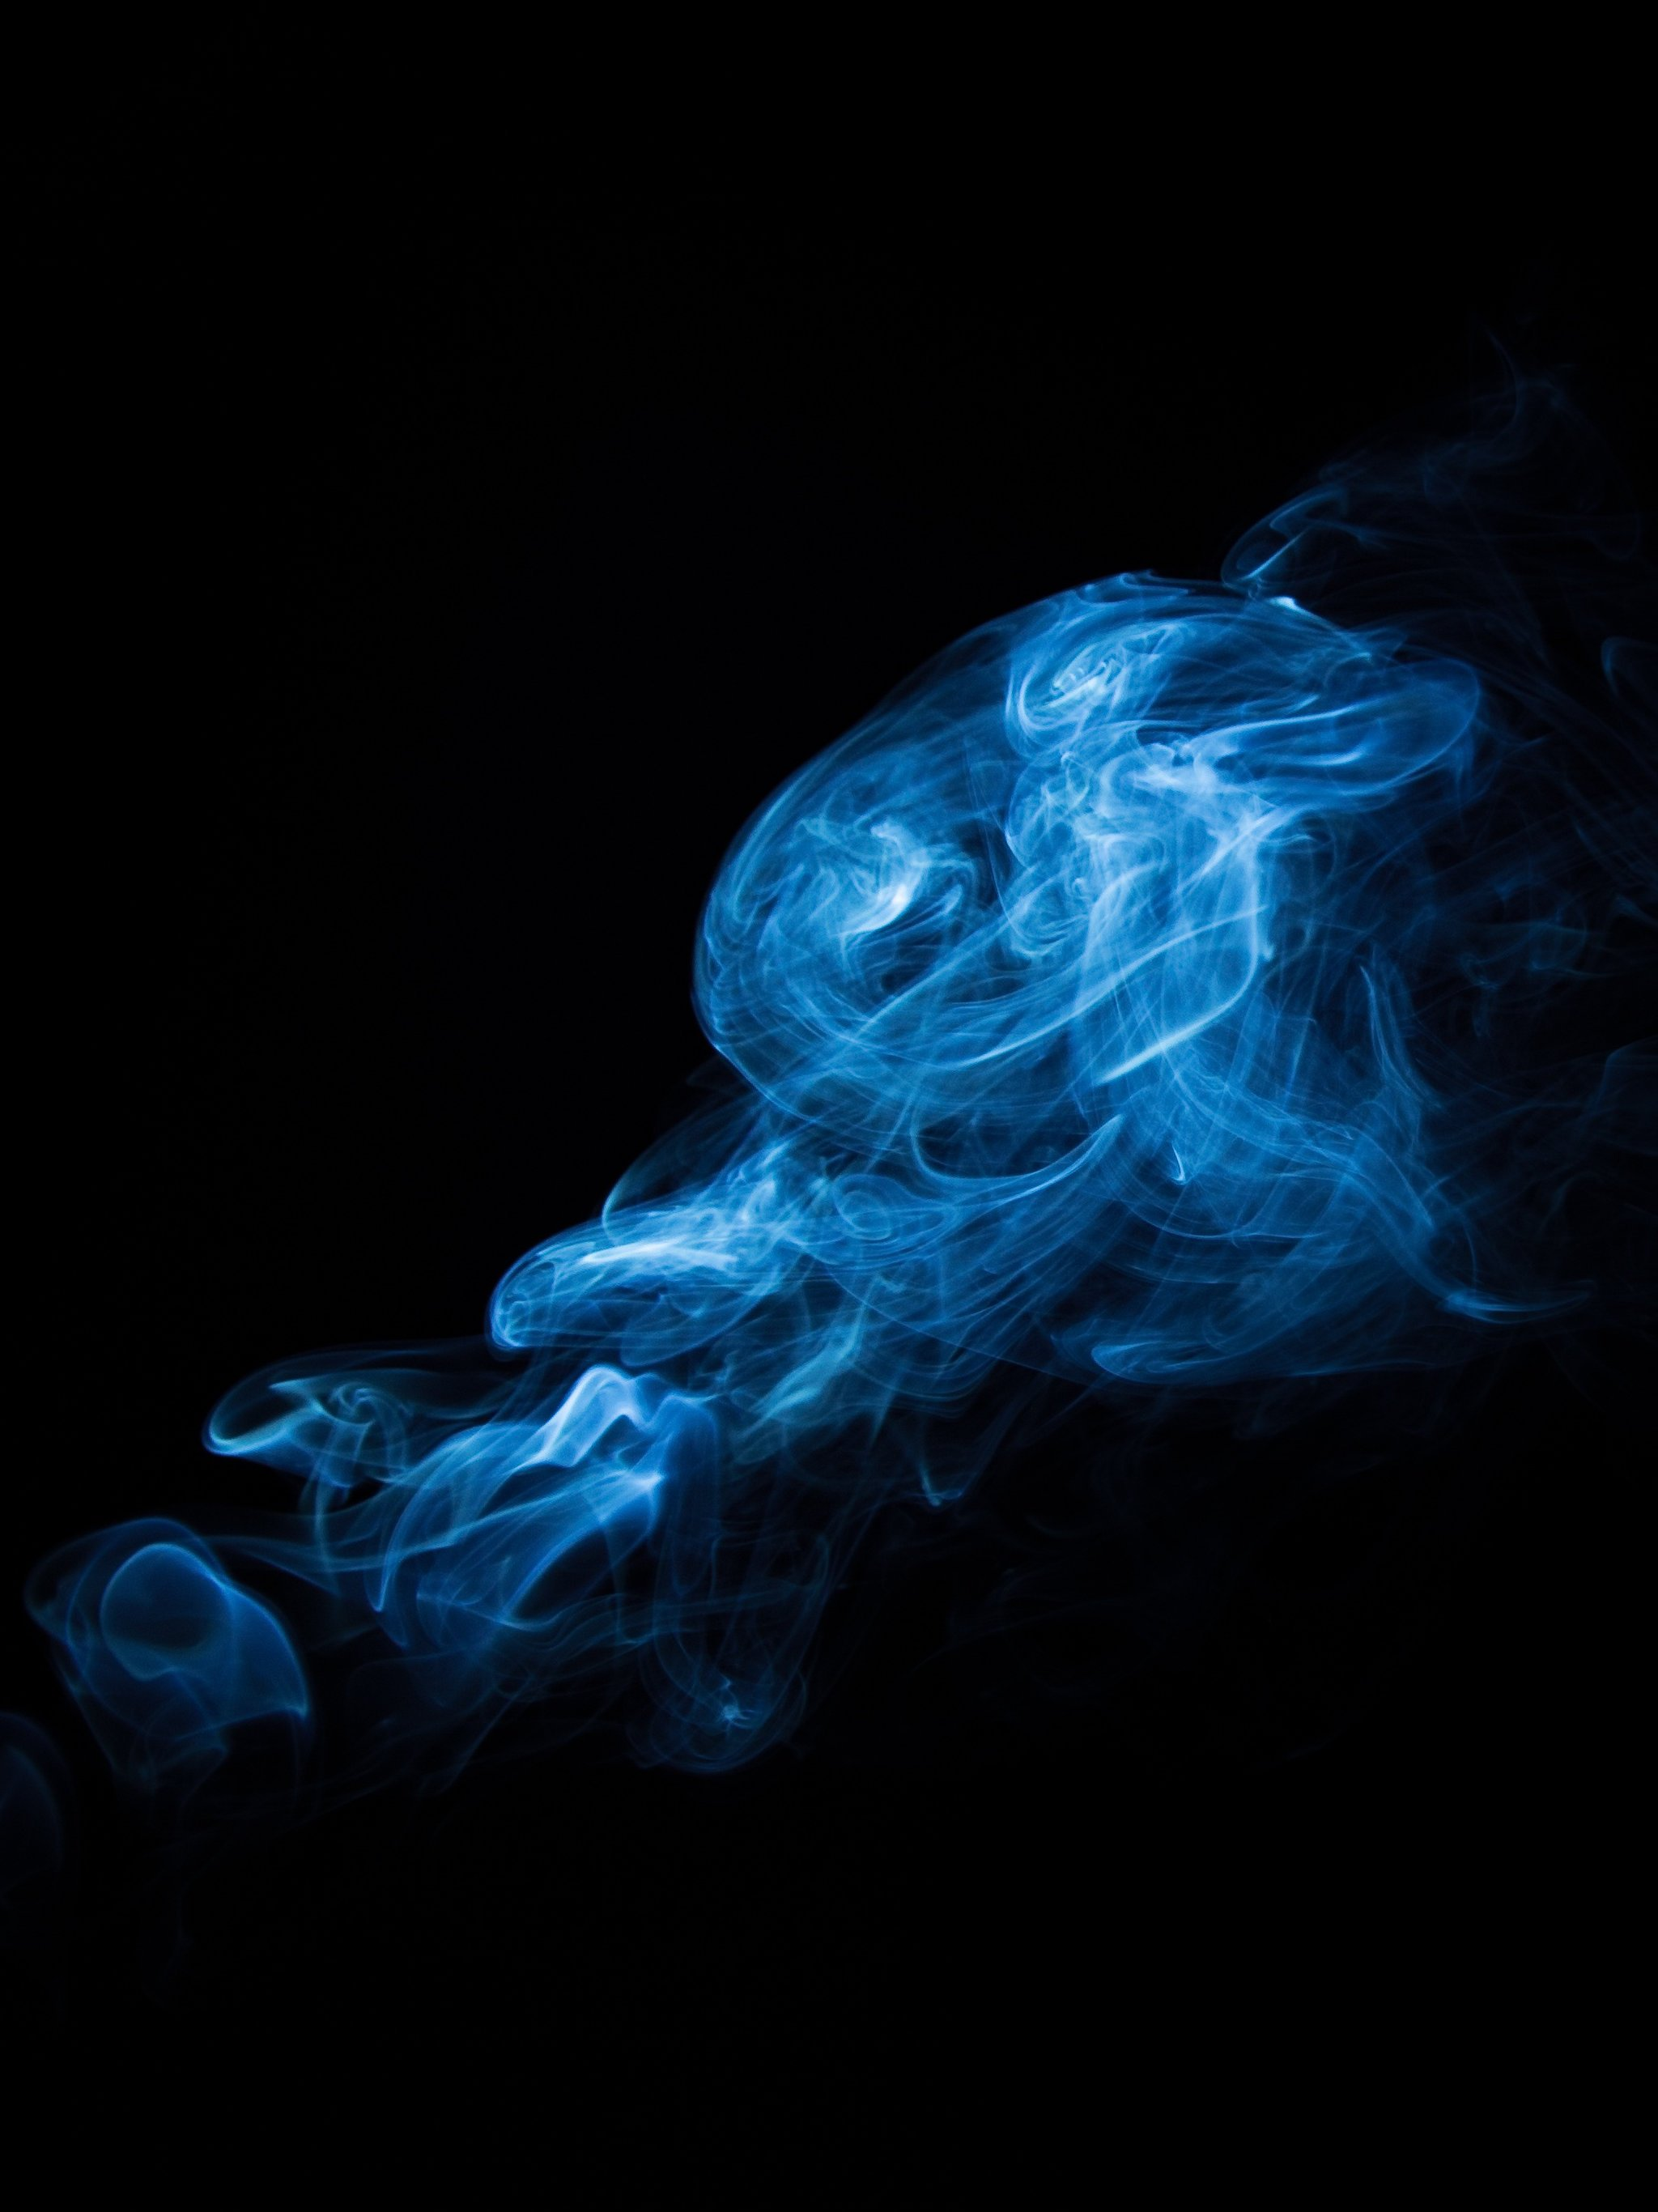 Remarkable Blue Smoke Wallpaper Iphone Android Desktop Backgrounds Interior Design Ideas Inamawefileorg